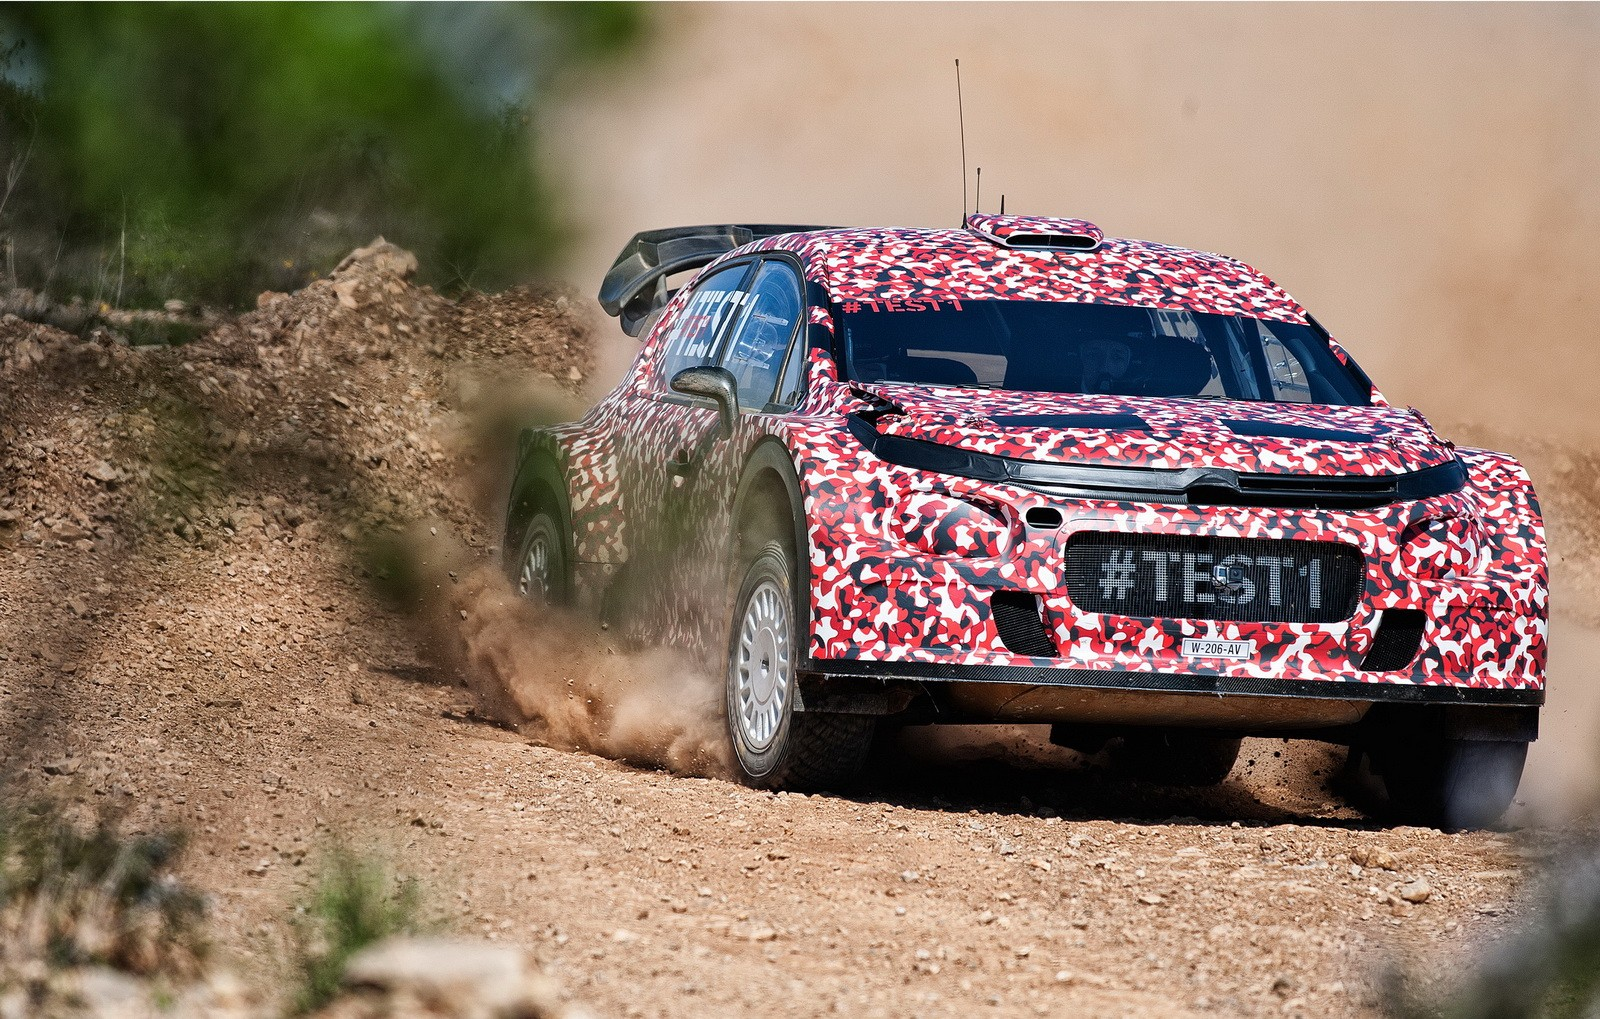 The 2017 FIA World Rally Championship Citroen C3 has undergone initial testing, this will be the ALL NEW C3.